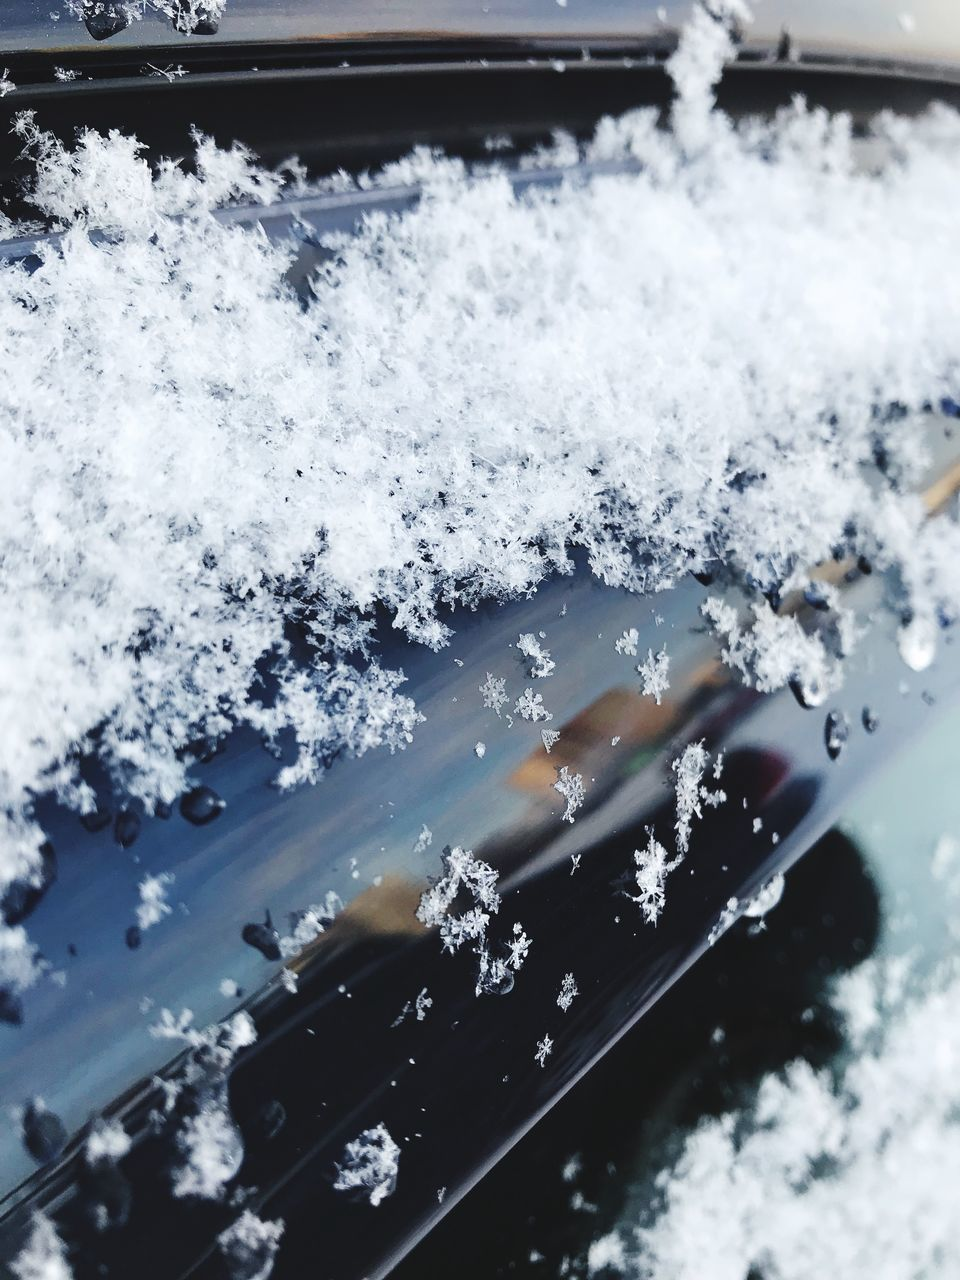 HIGH ANGLE VIEW OF SNOW COVERED CAR ON ROAD